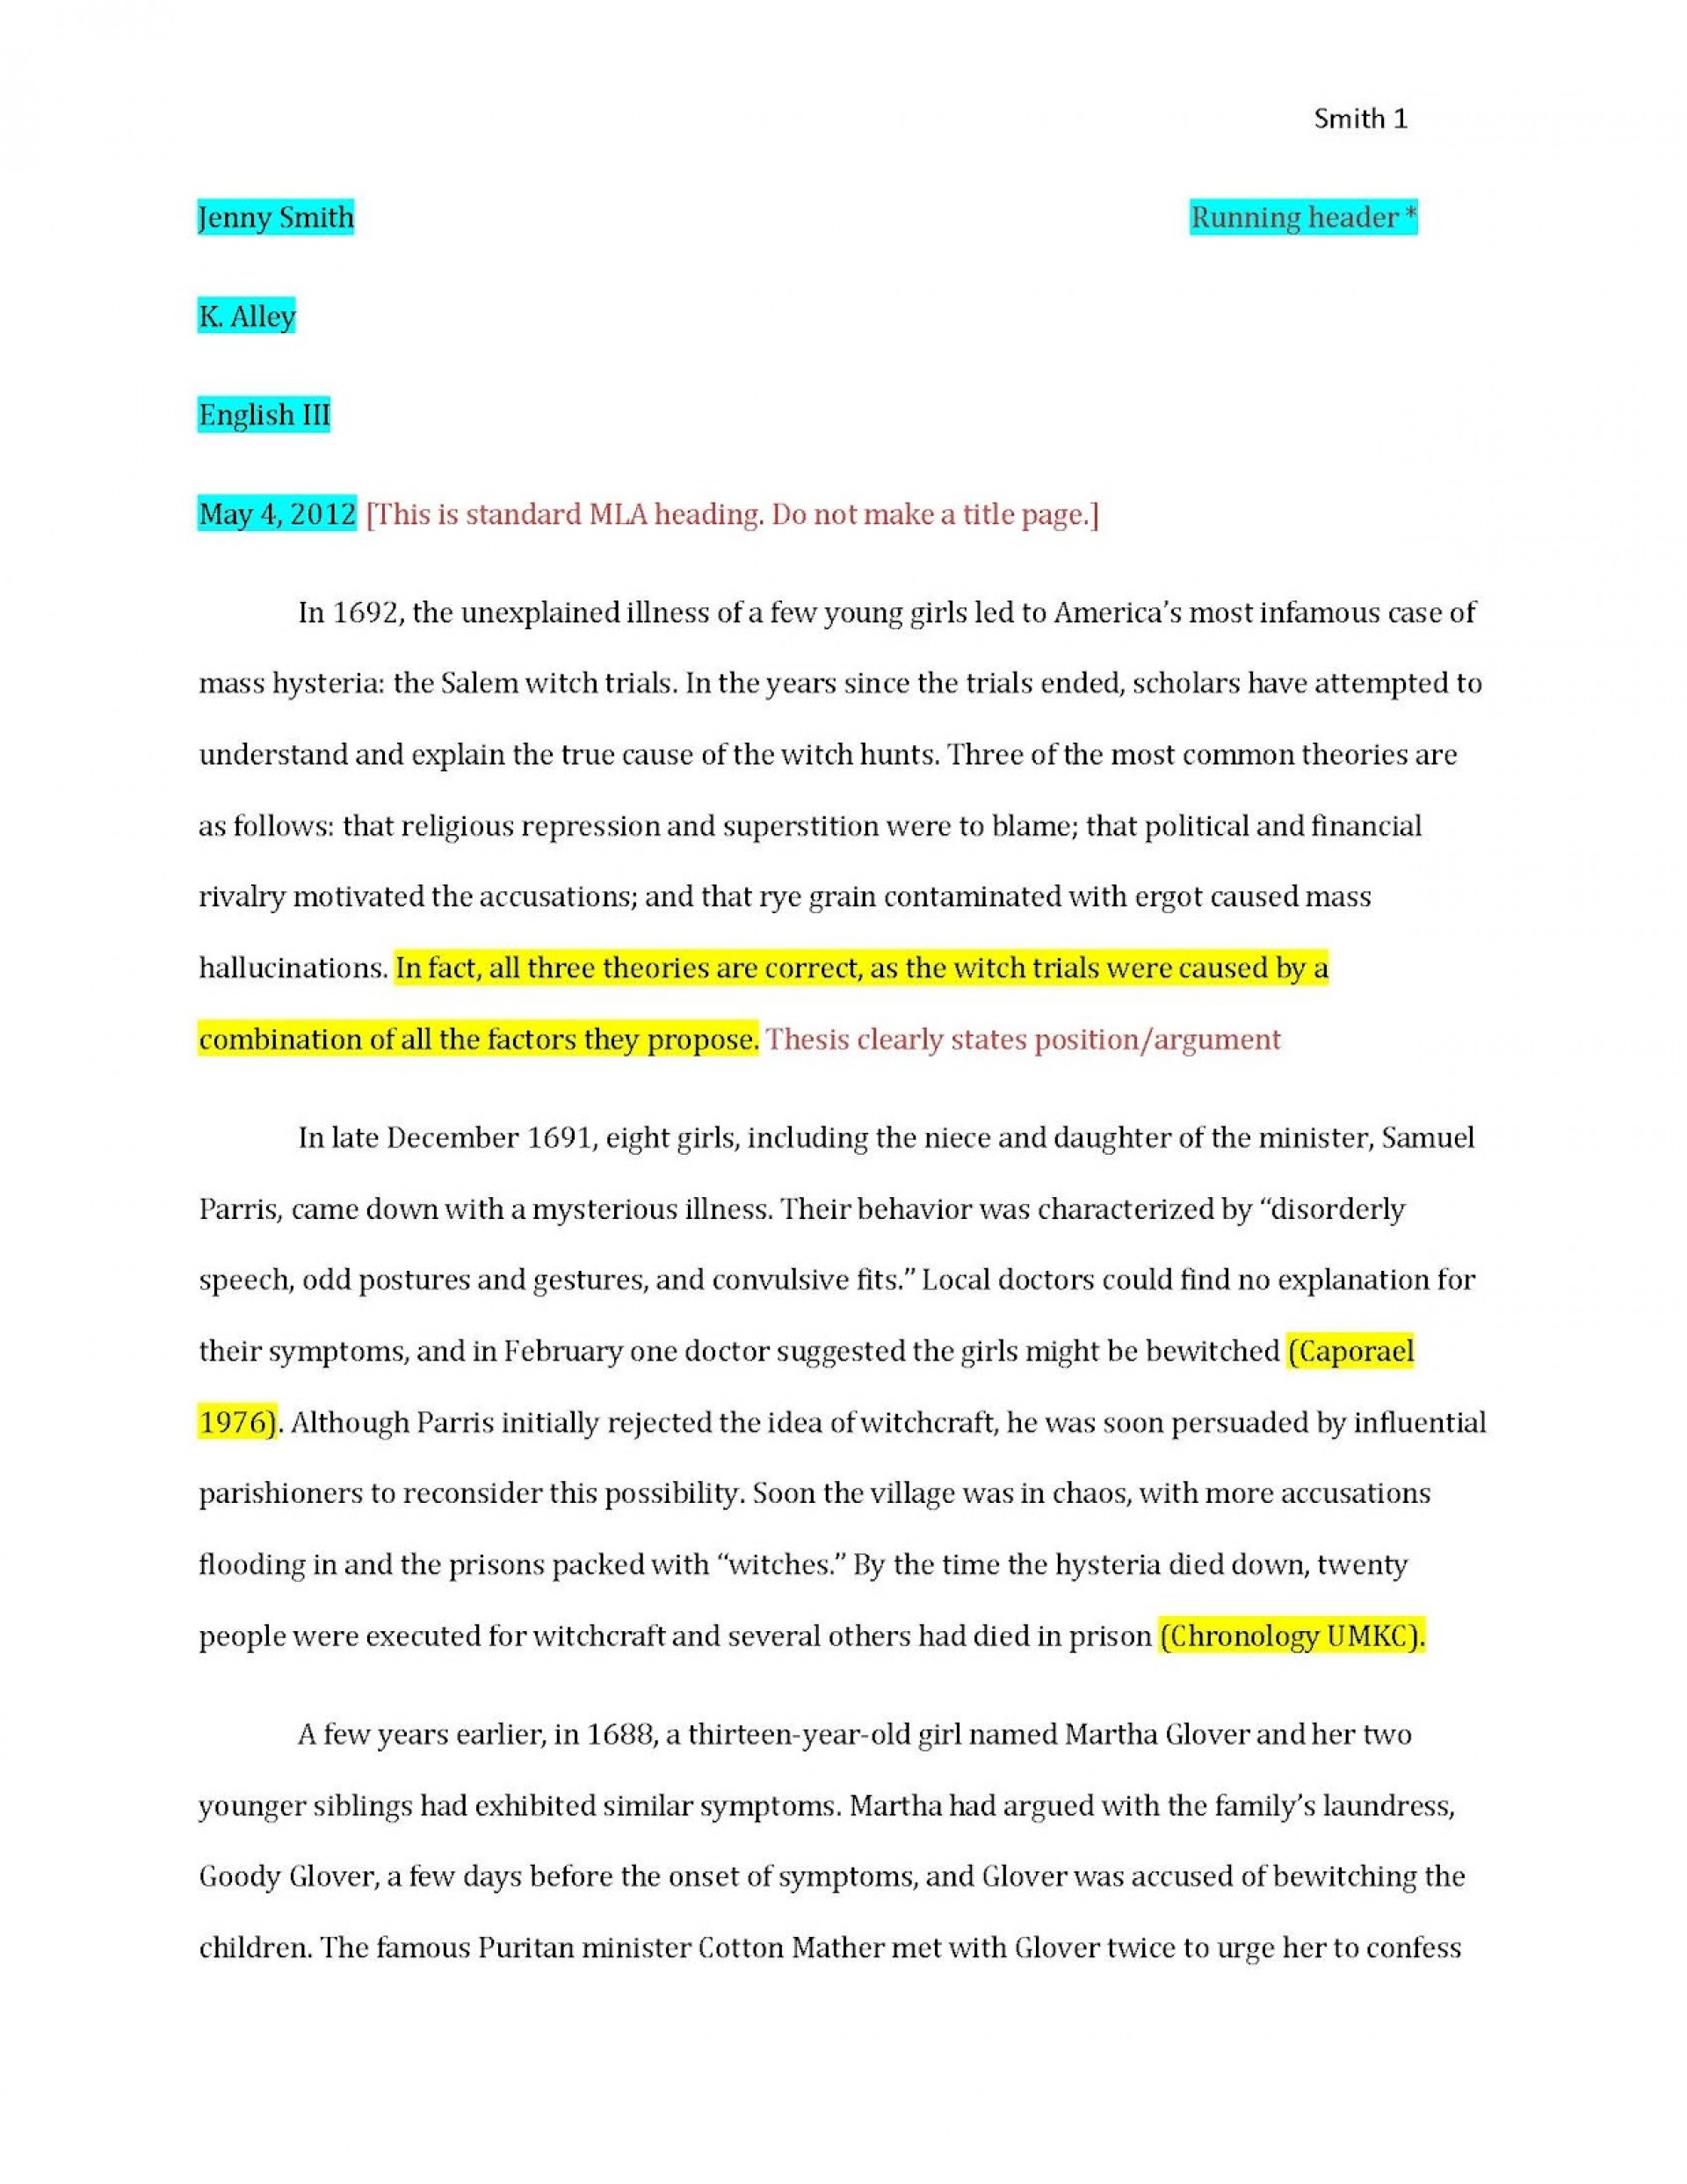 002 Citation Research Papers Paper Examplepaper Page 1 Incredible Long Island University Style For Apa Sample 1920